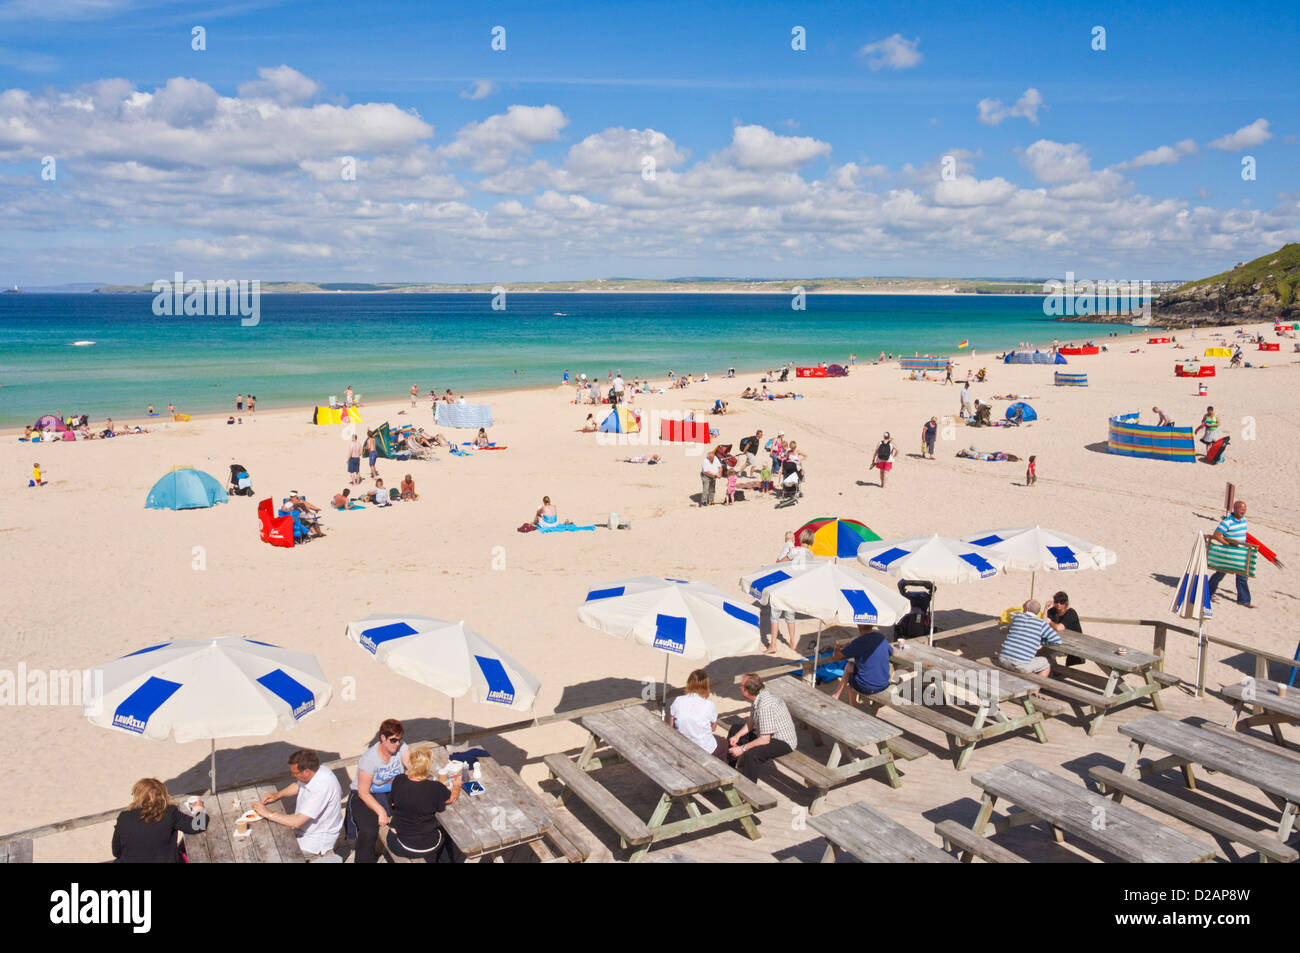 holidaymakers sunbathing and enjoying themselves on Porthmeor beach and cafe  St Ives Cornwall England UK GB EU - Stock Image